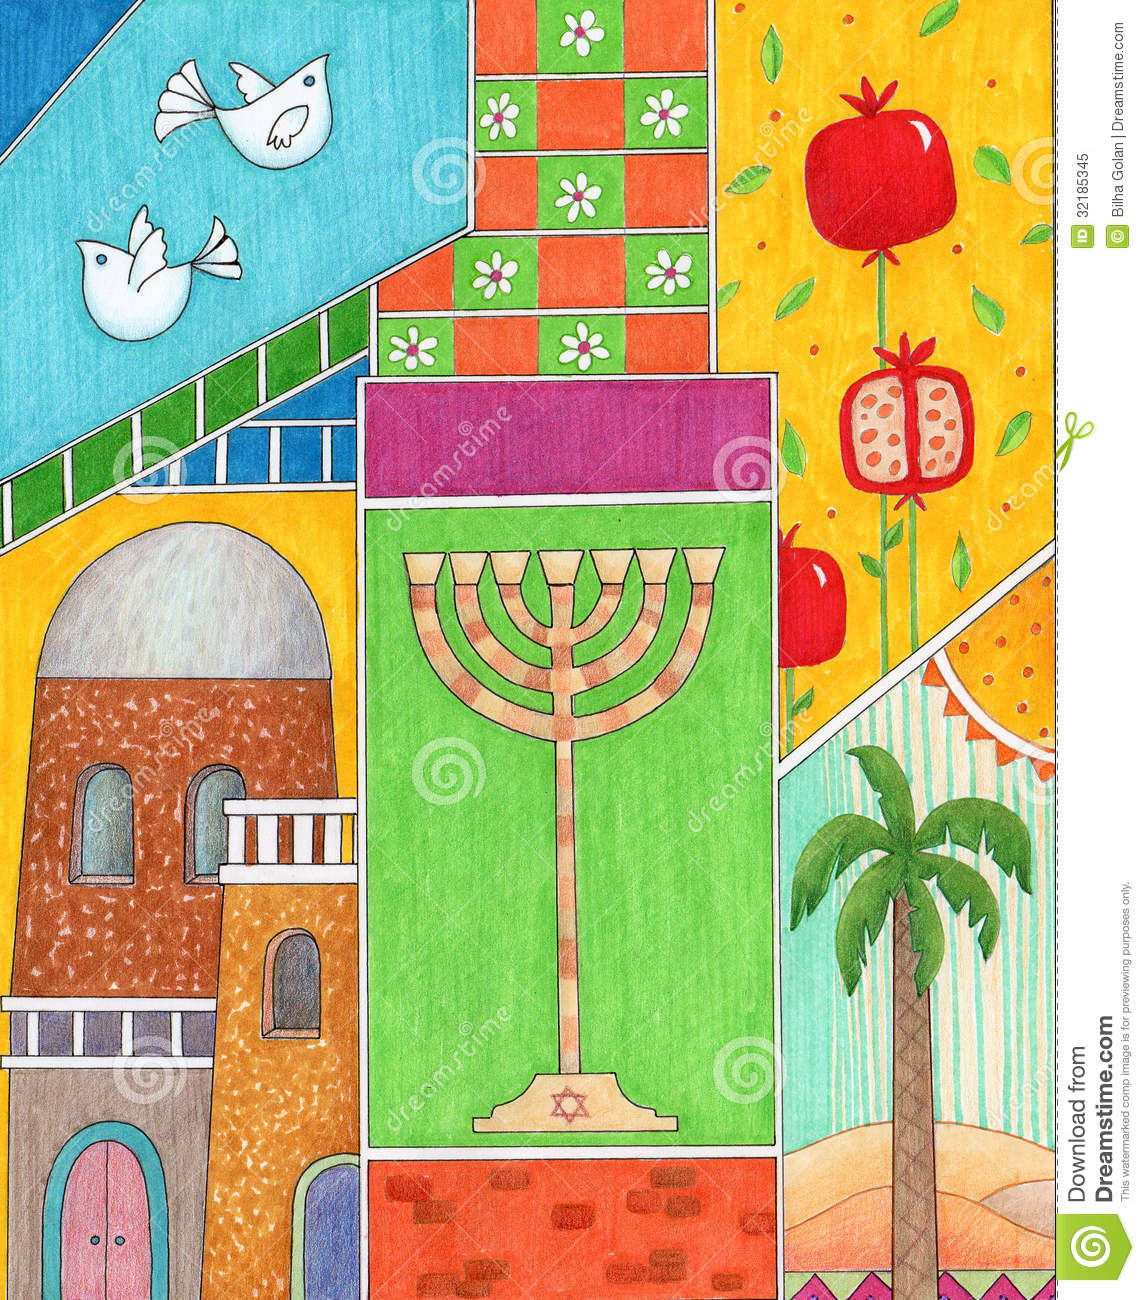 Rosh hashanah greeting stock illustration illustration of year rosh hashanah greeting kristyandbryce Choice Image